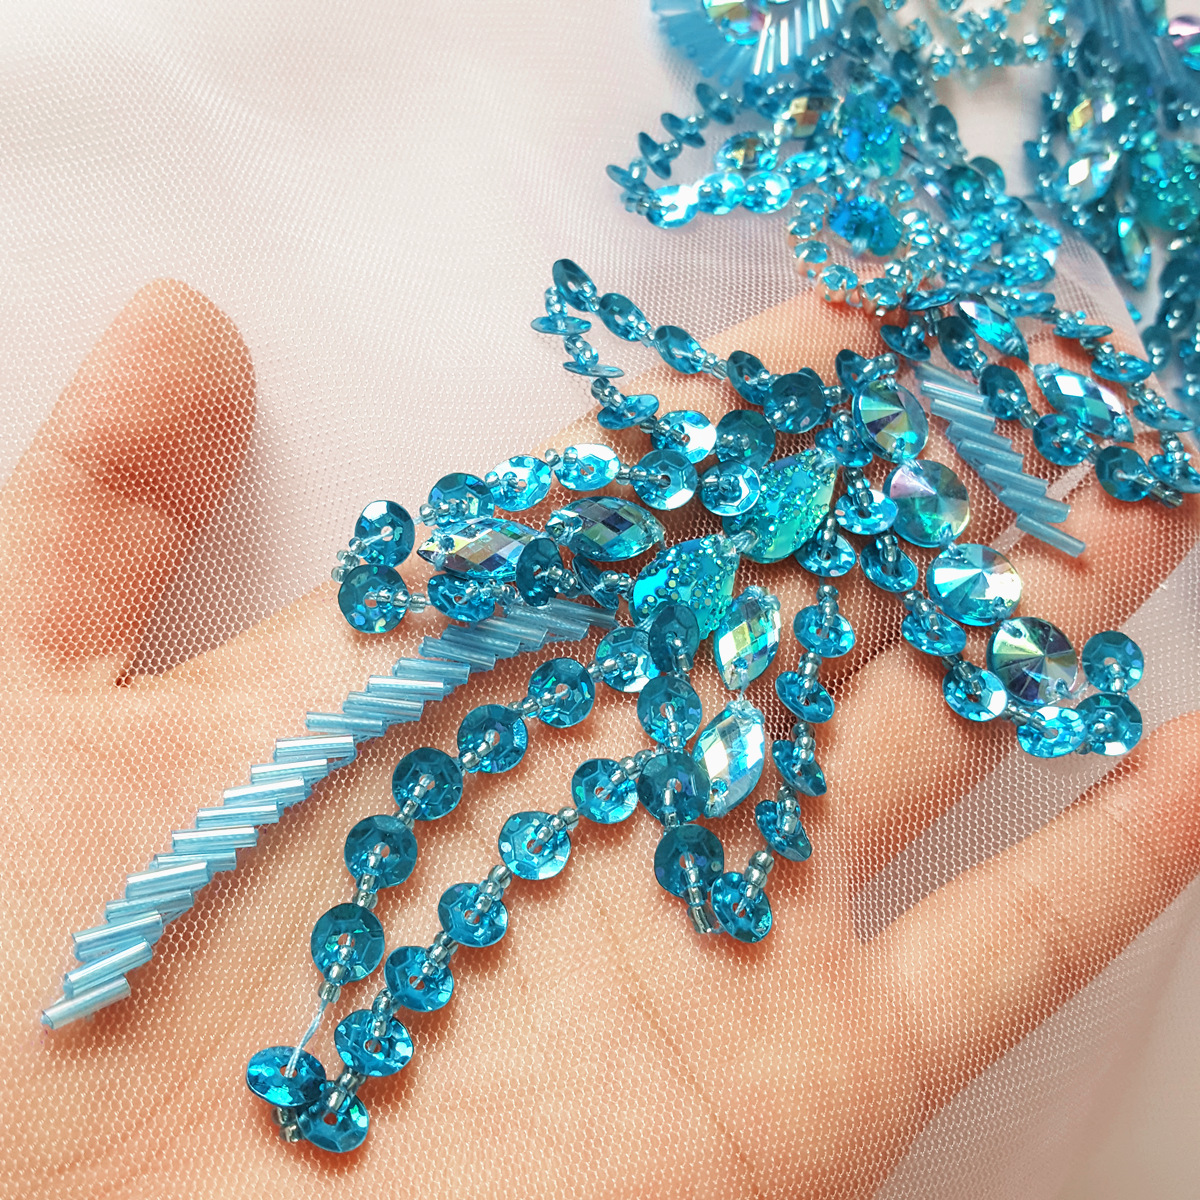 Baby Blue Goddess 29x39cm Patches Applique Beaded Rhinestones For Sewing  Clothing Evening Wedding Dress decorative Accessories -in Patches from Home  ... 9c6369efbed8